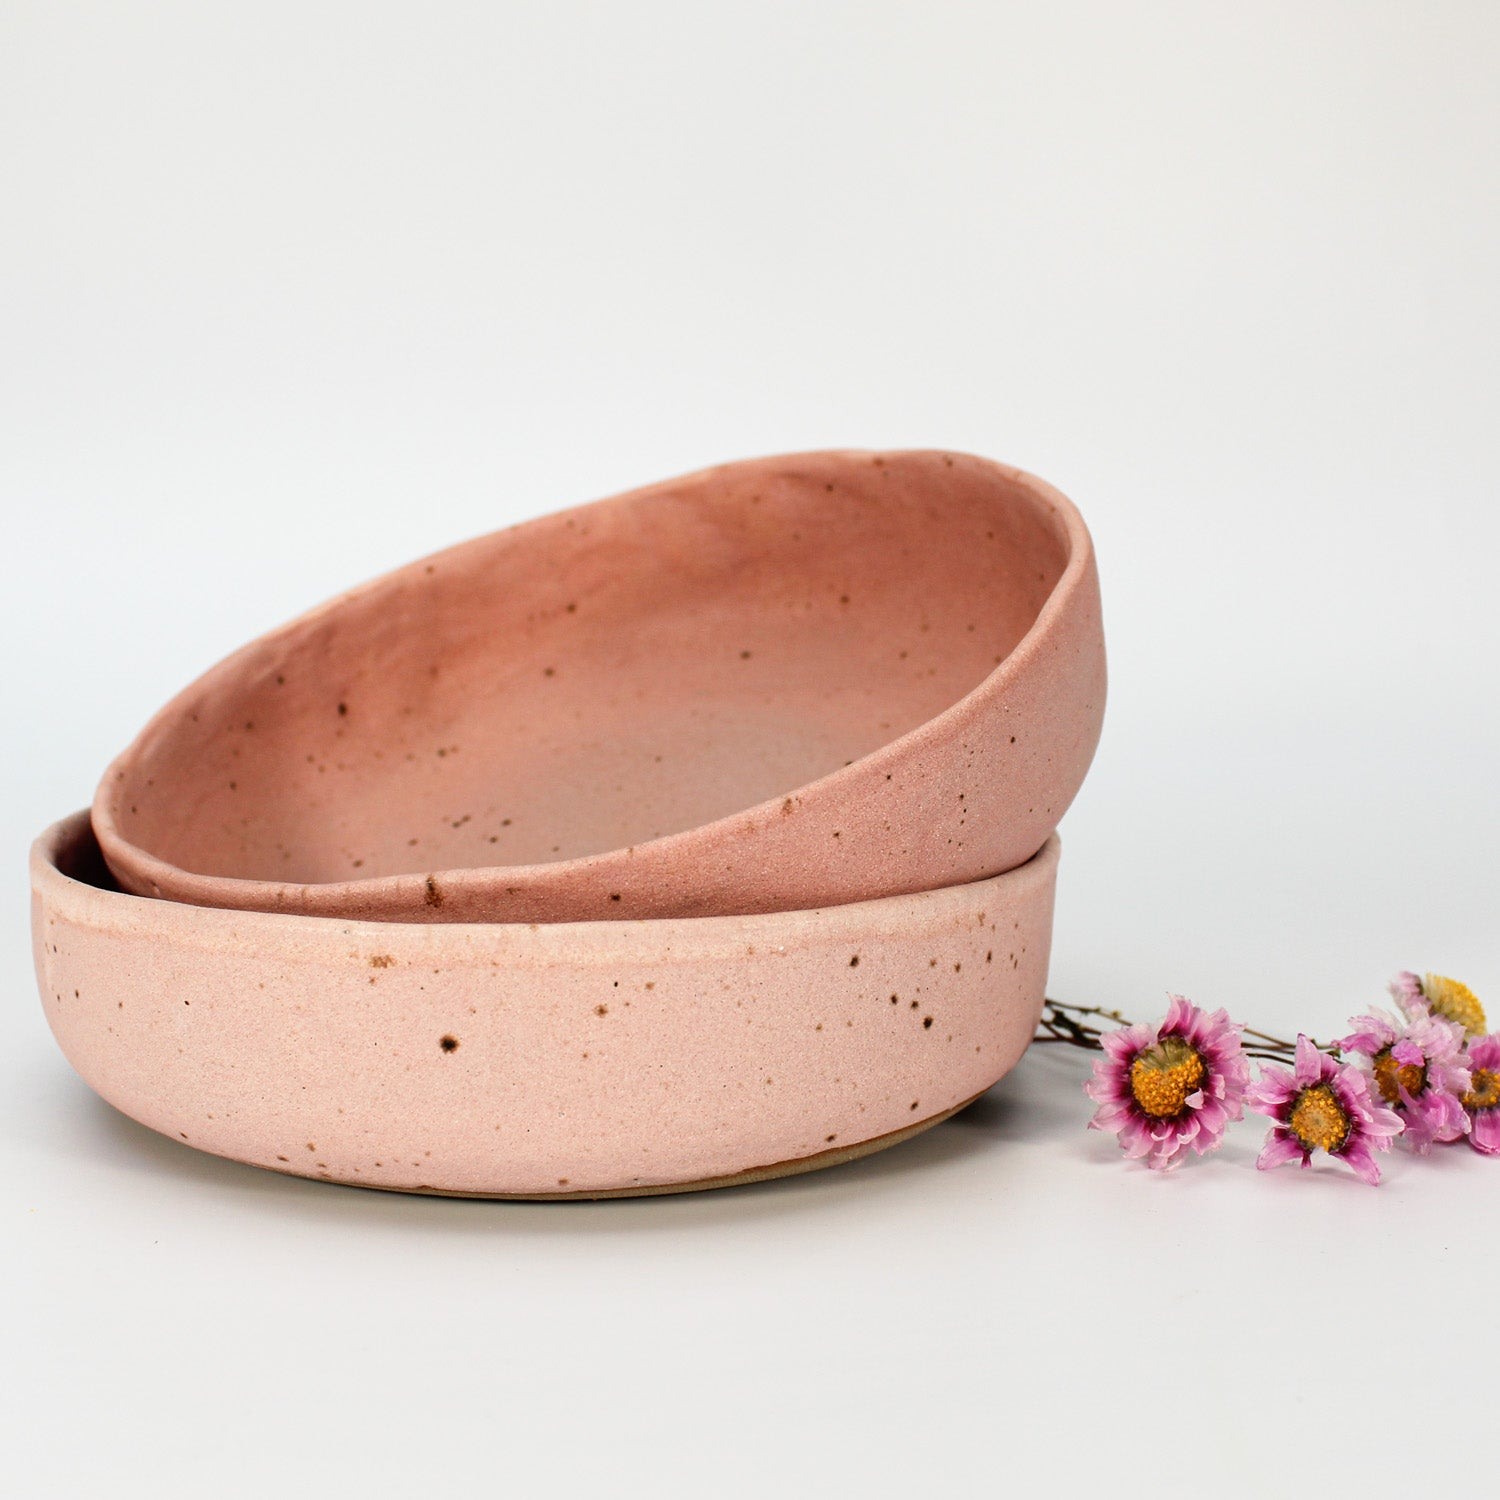 Pair of pink speckled dishes